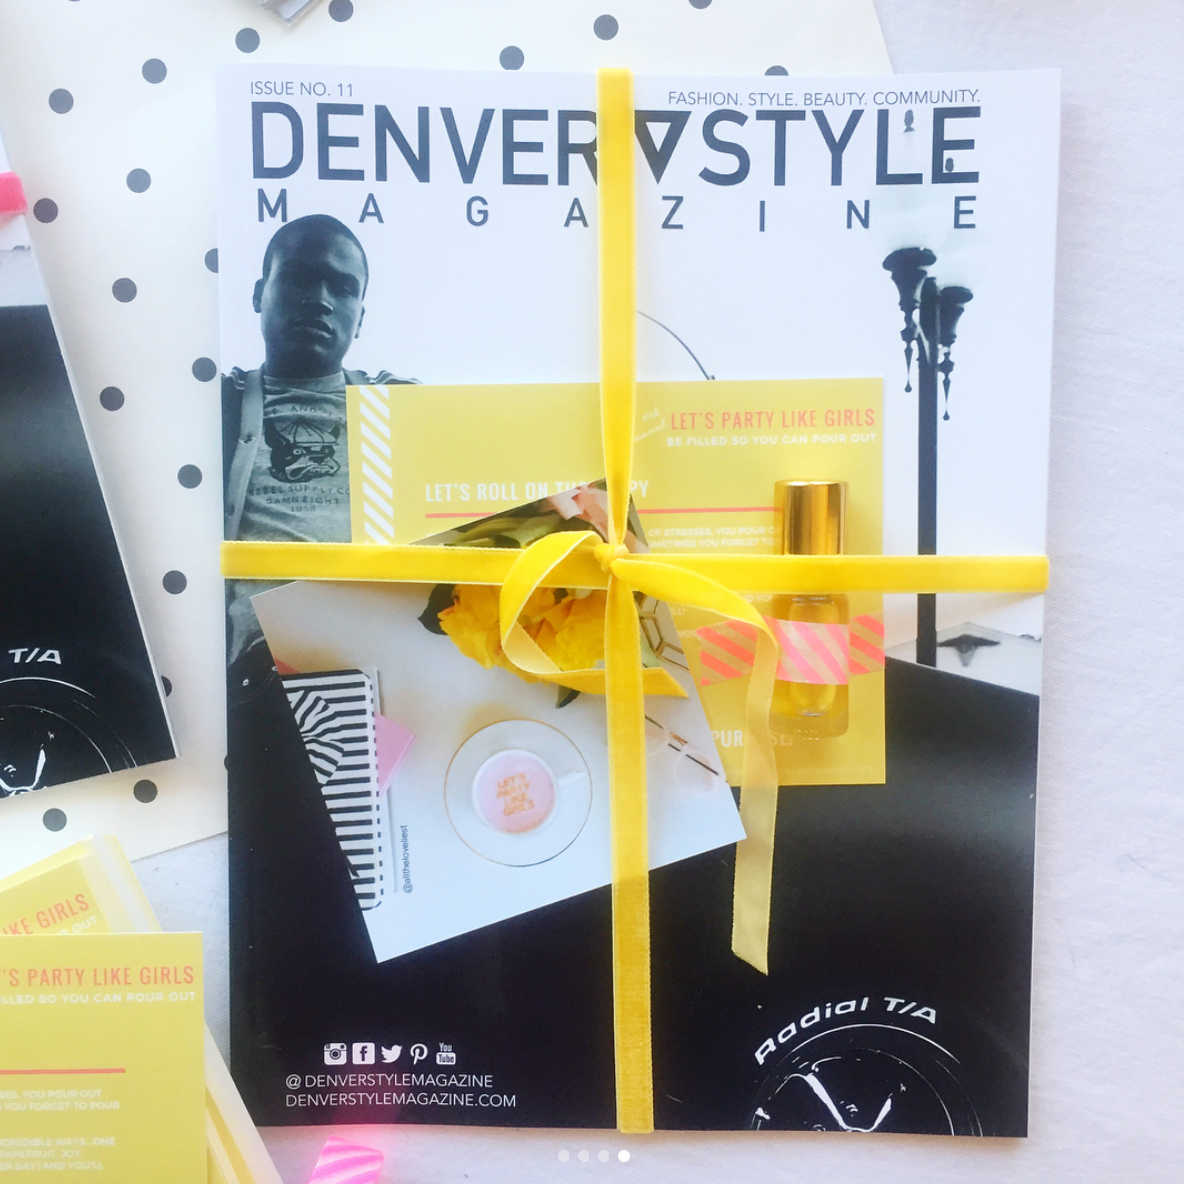 Denver+Style+Magazine+swag (1).png